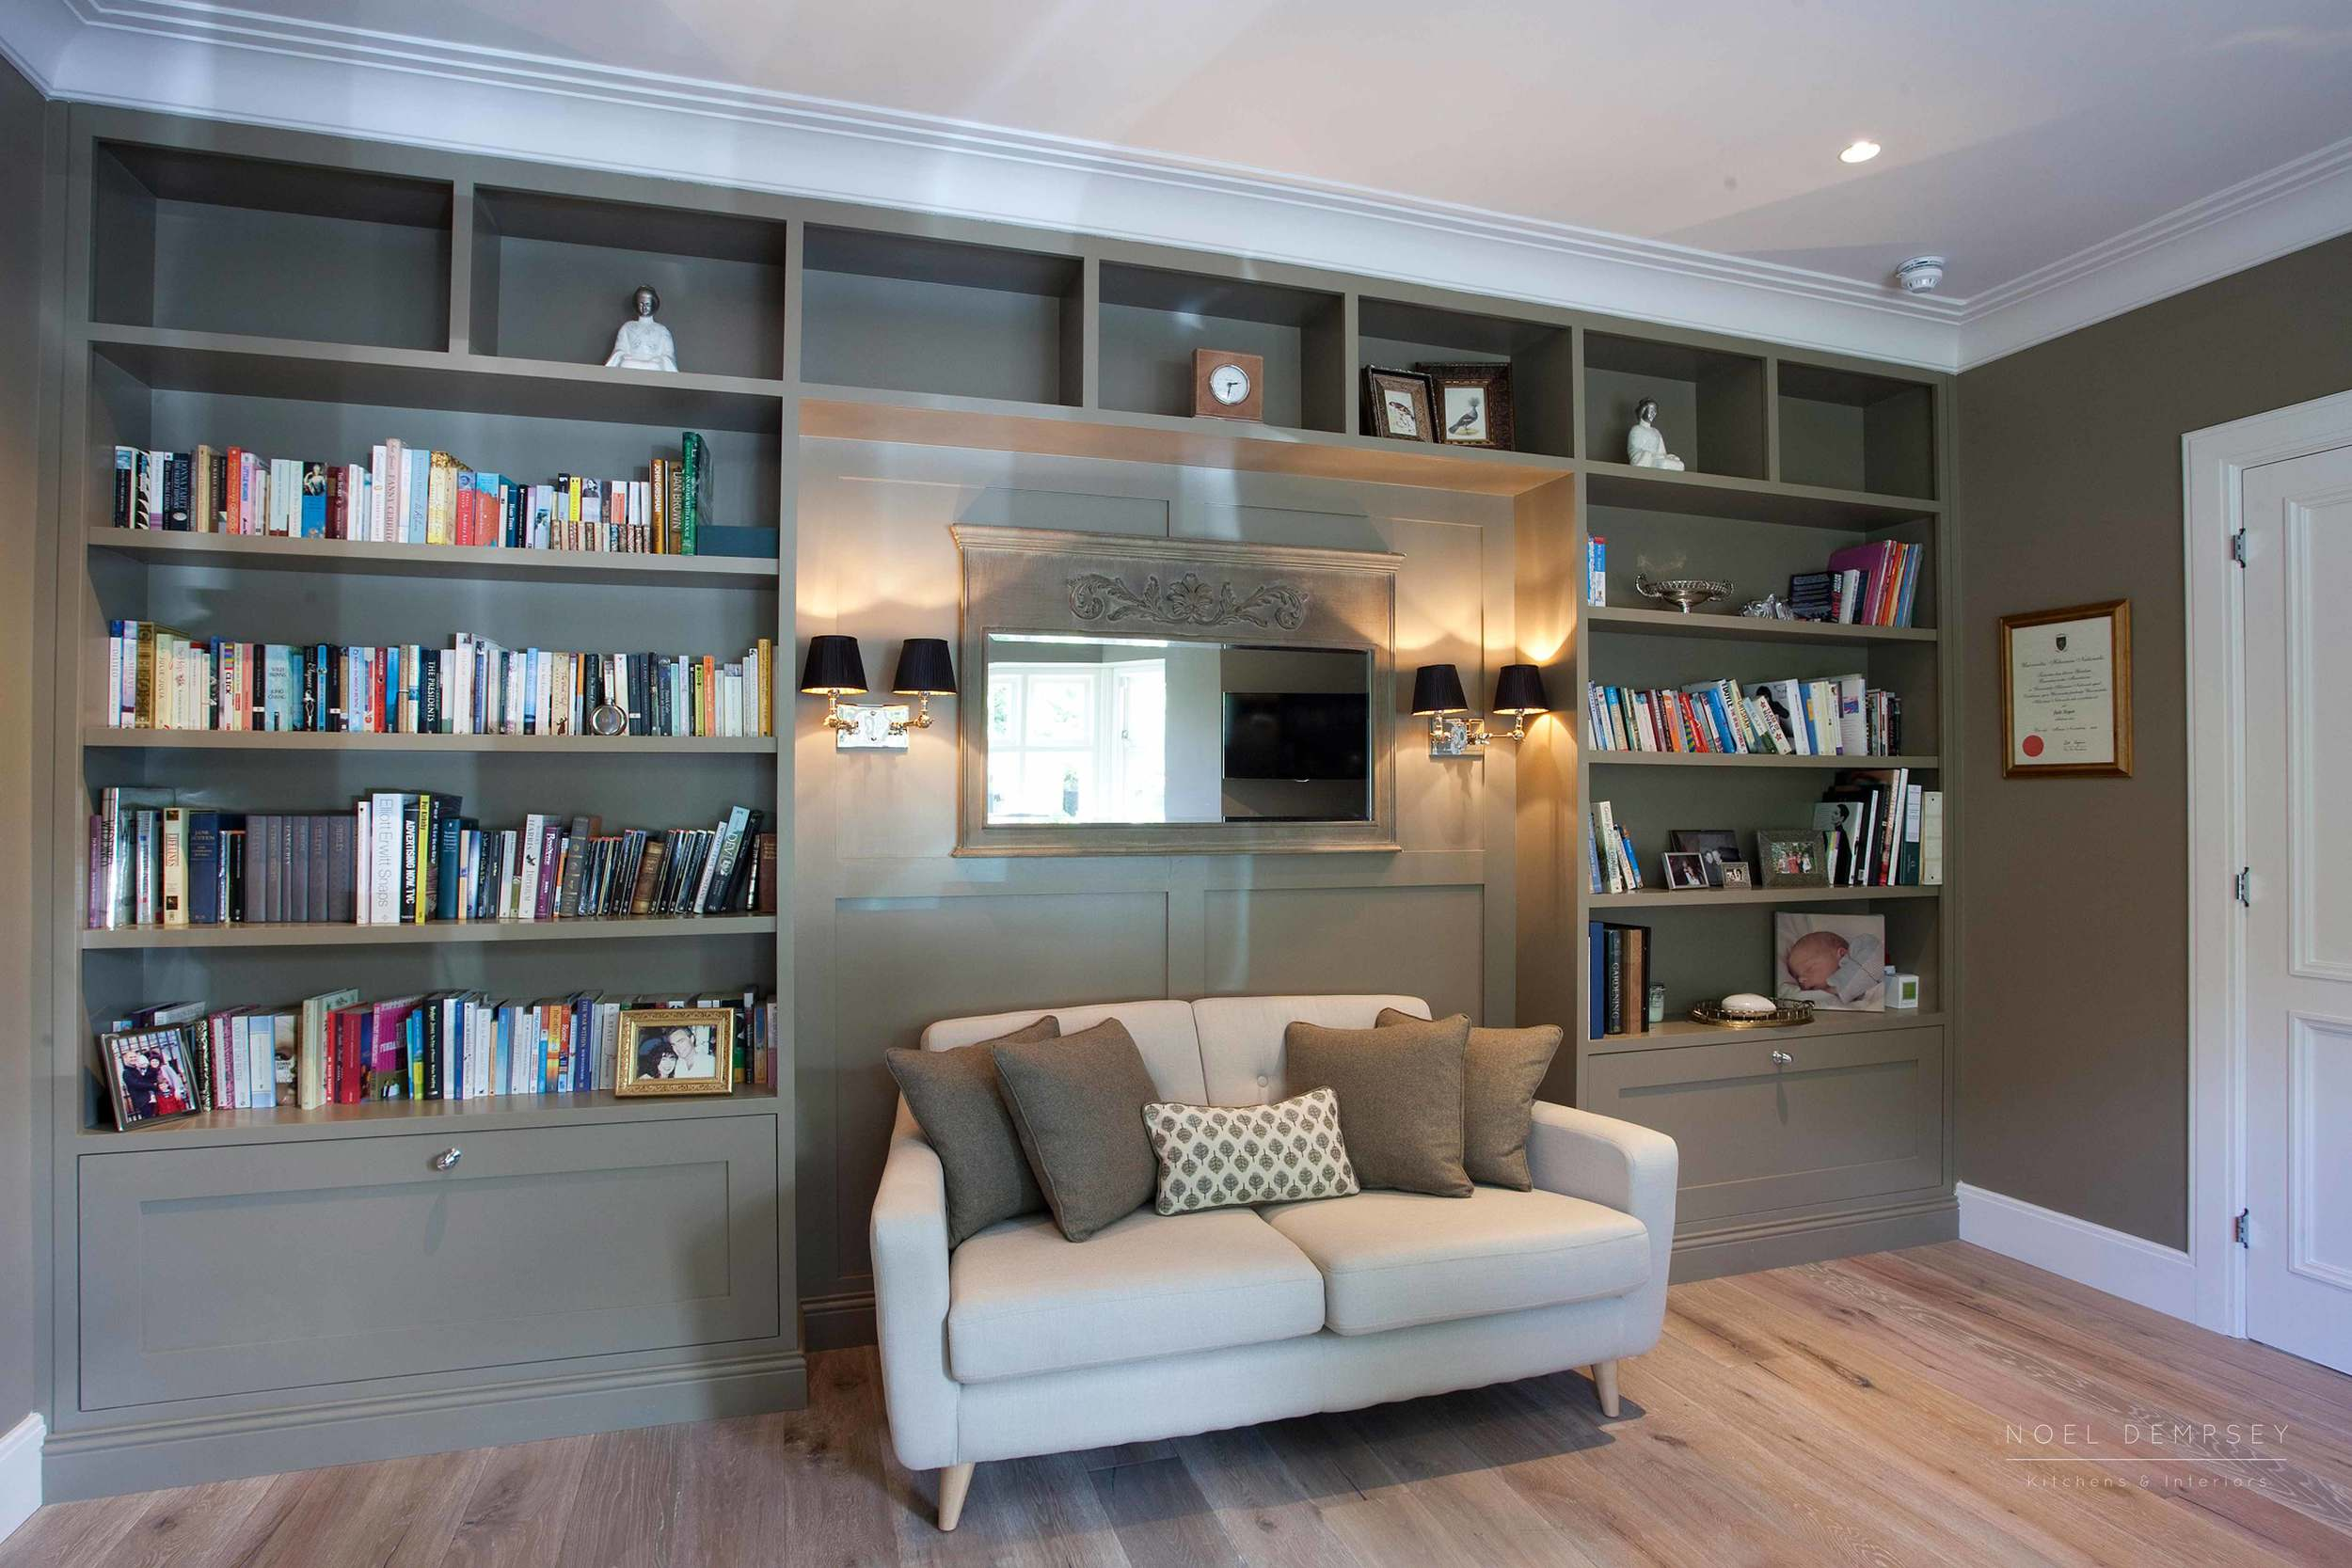 white living room furniture ireland curtains bespoke luxury noel dempsey design built in study shelving 1 jpg